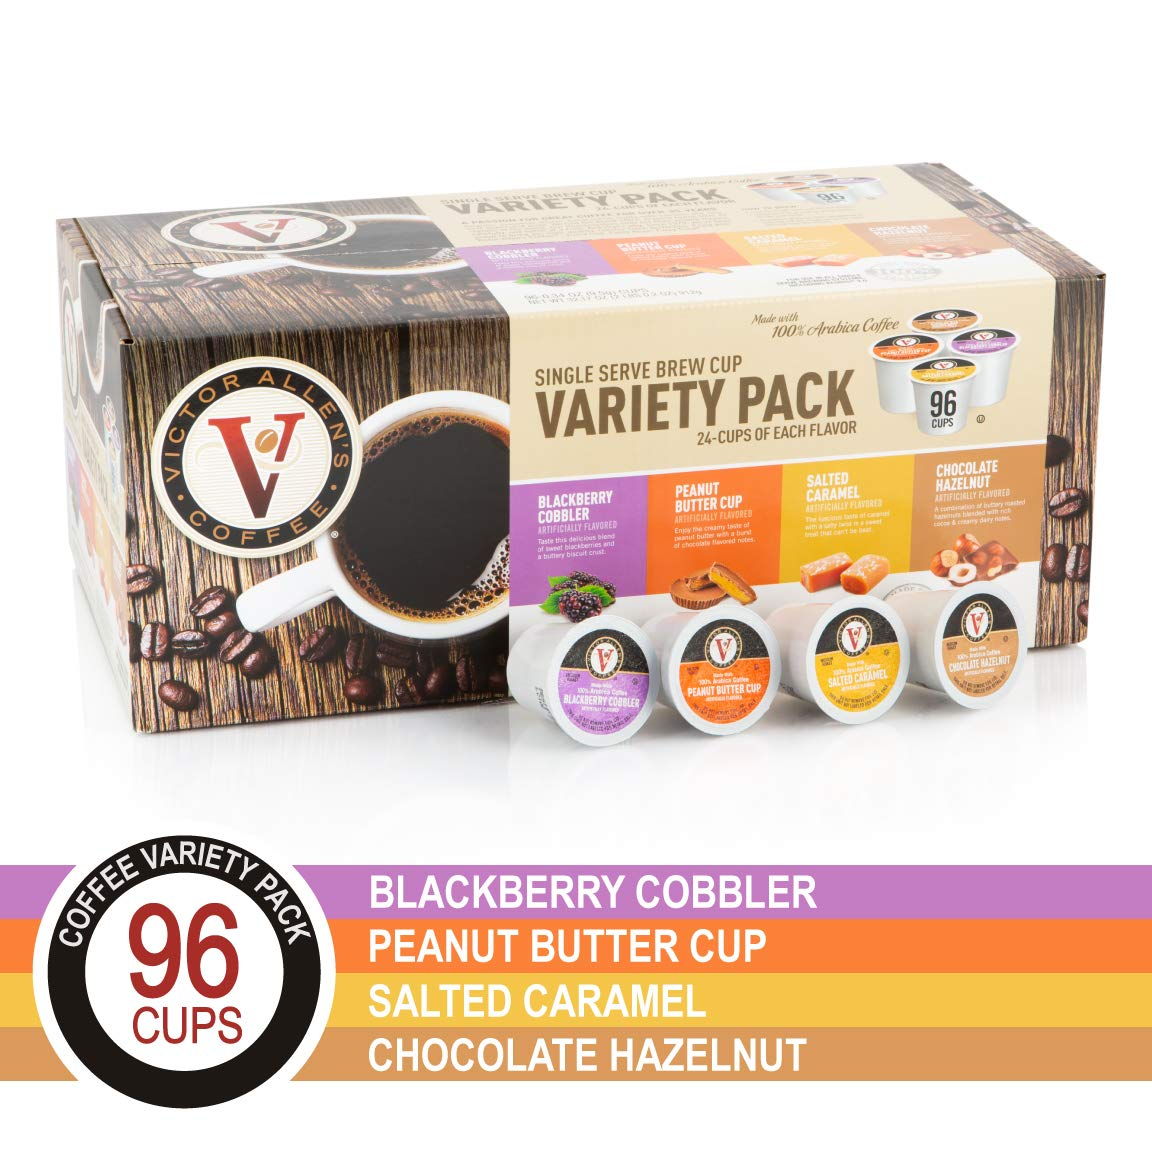 Peanut Butter Cup, Salted Caramel, Blackberry Cobbler, and Chocolate Hazelnut Variety Pack for for K-Cup Keurig 2.0 Brewers, 96 Count, Victor Allen's CoffeeSingle Serve Coffee Pods